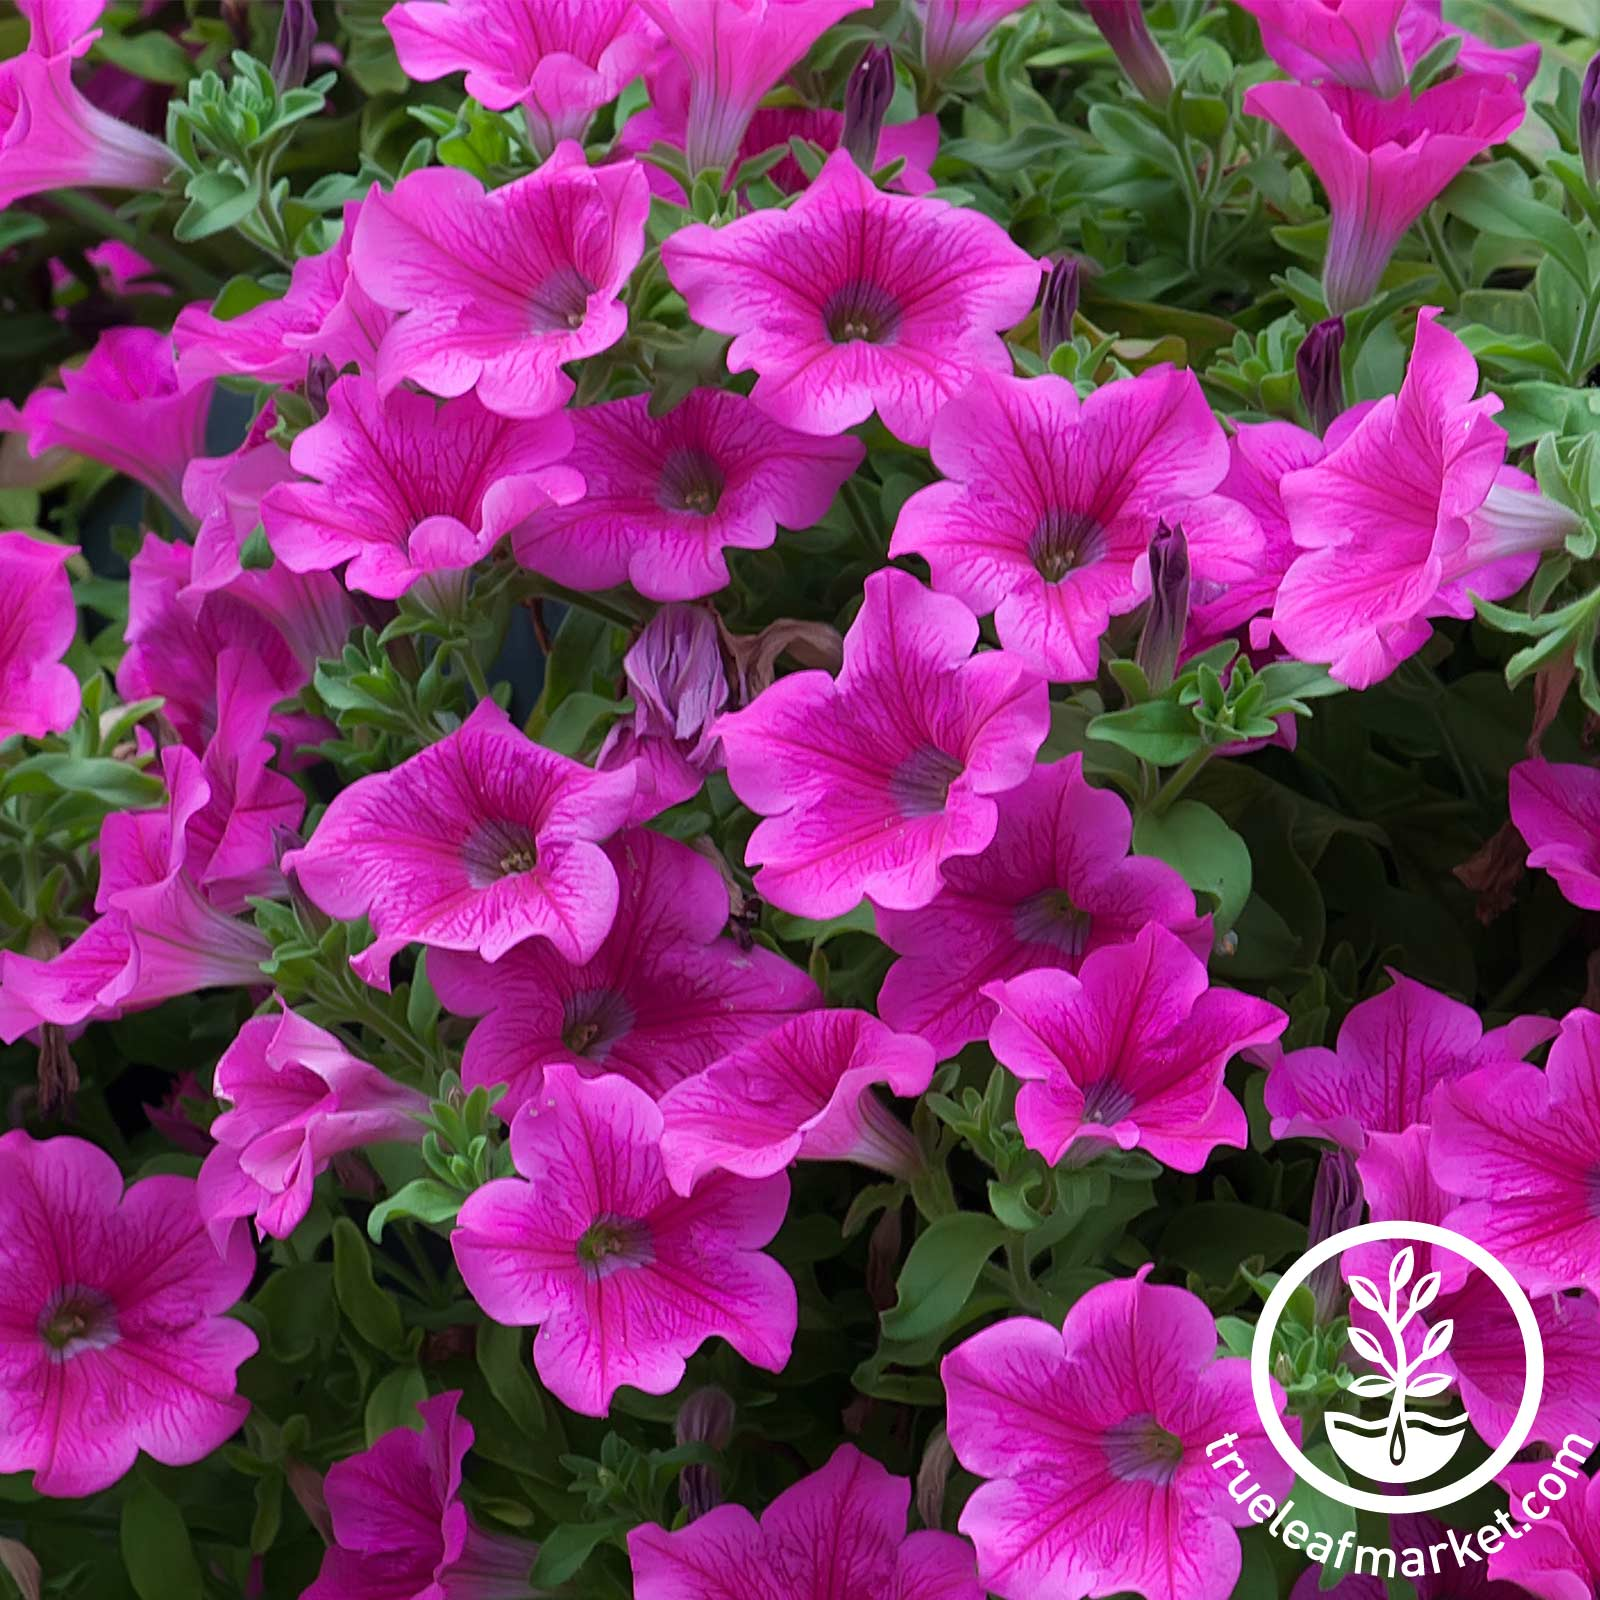 Petunia - Supercascade Series (pelleted) - Pink